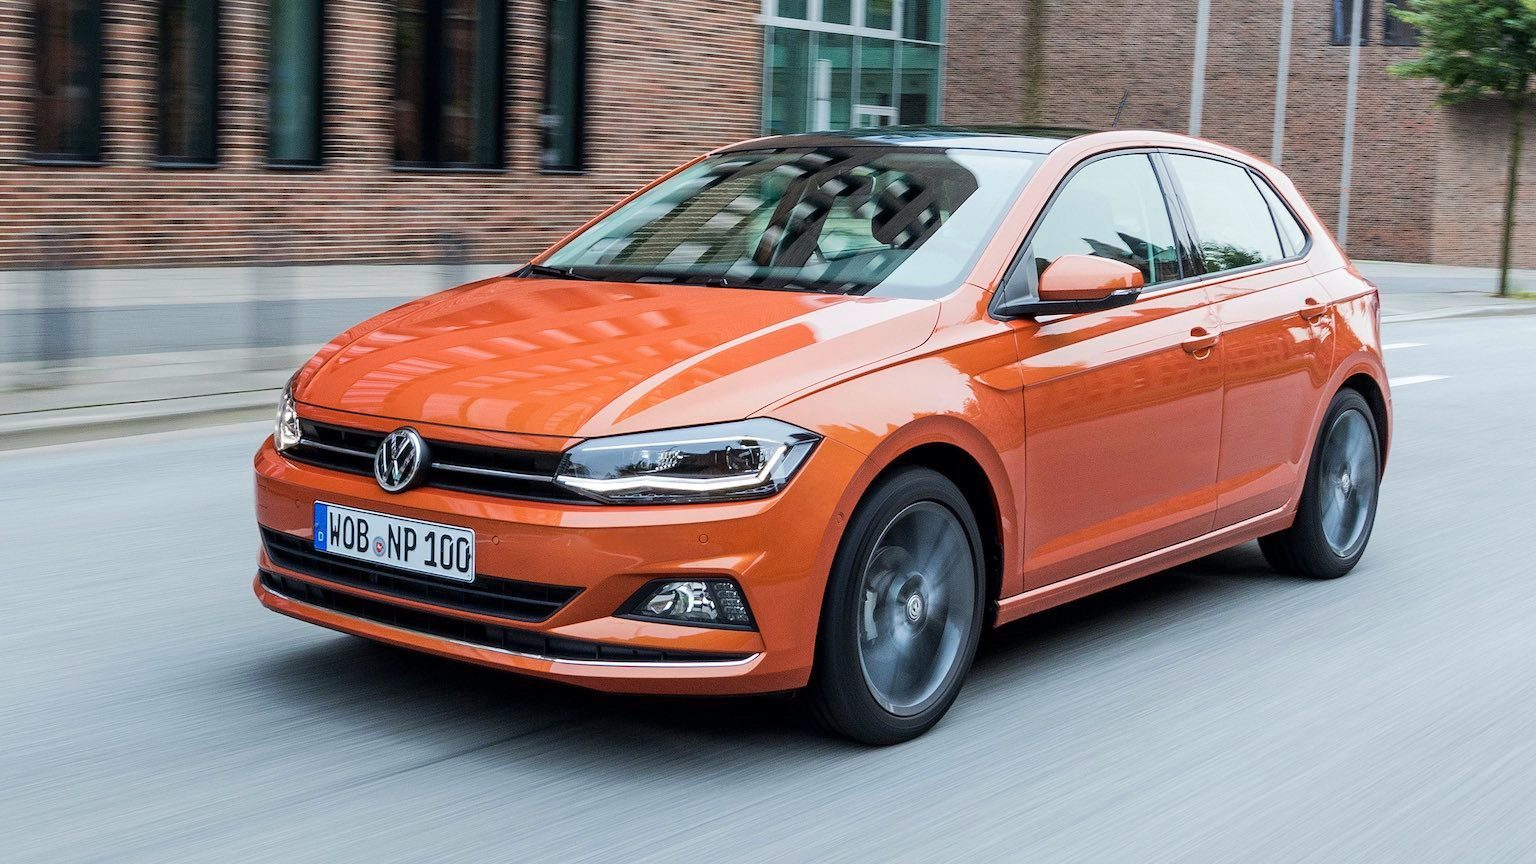 Volkswagen Polo insurance group & cost - 2020 | Finder UK